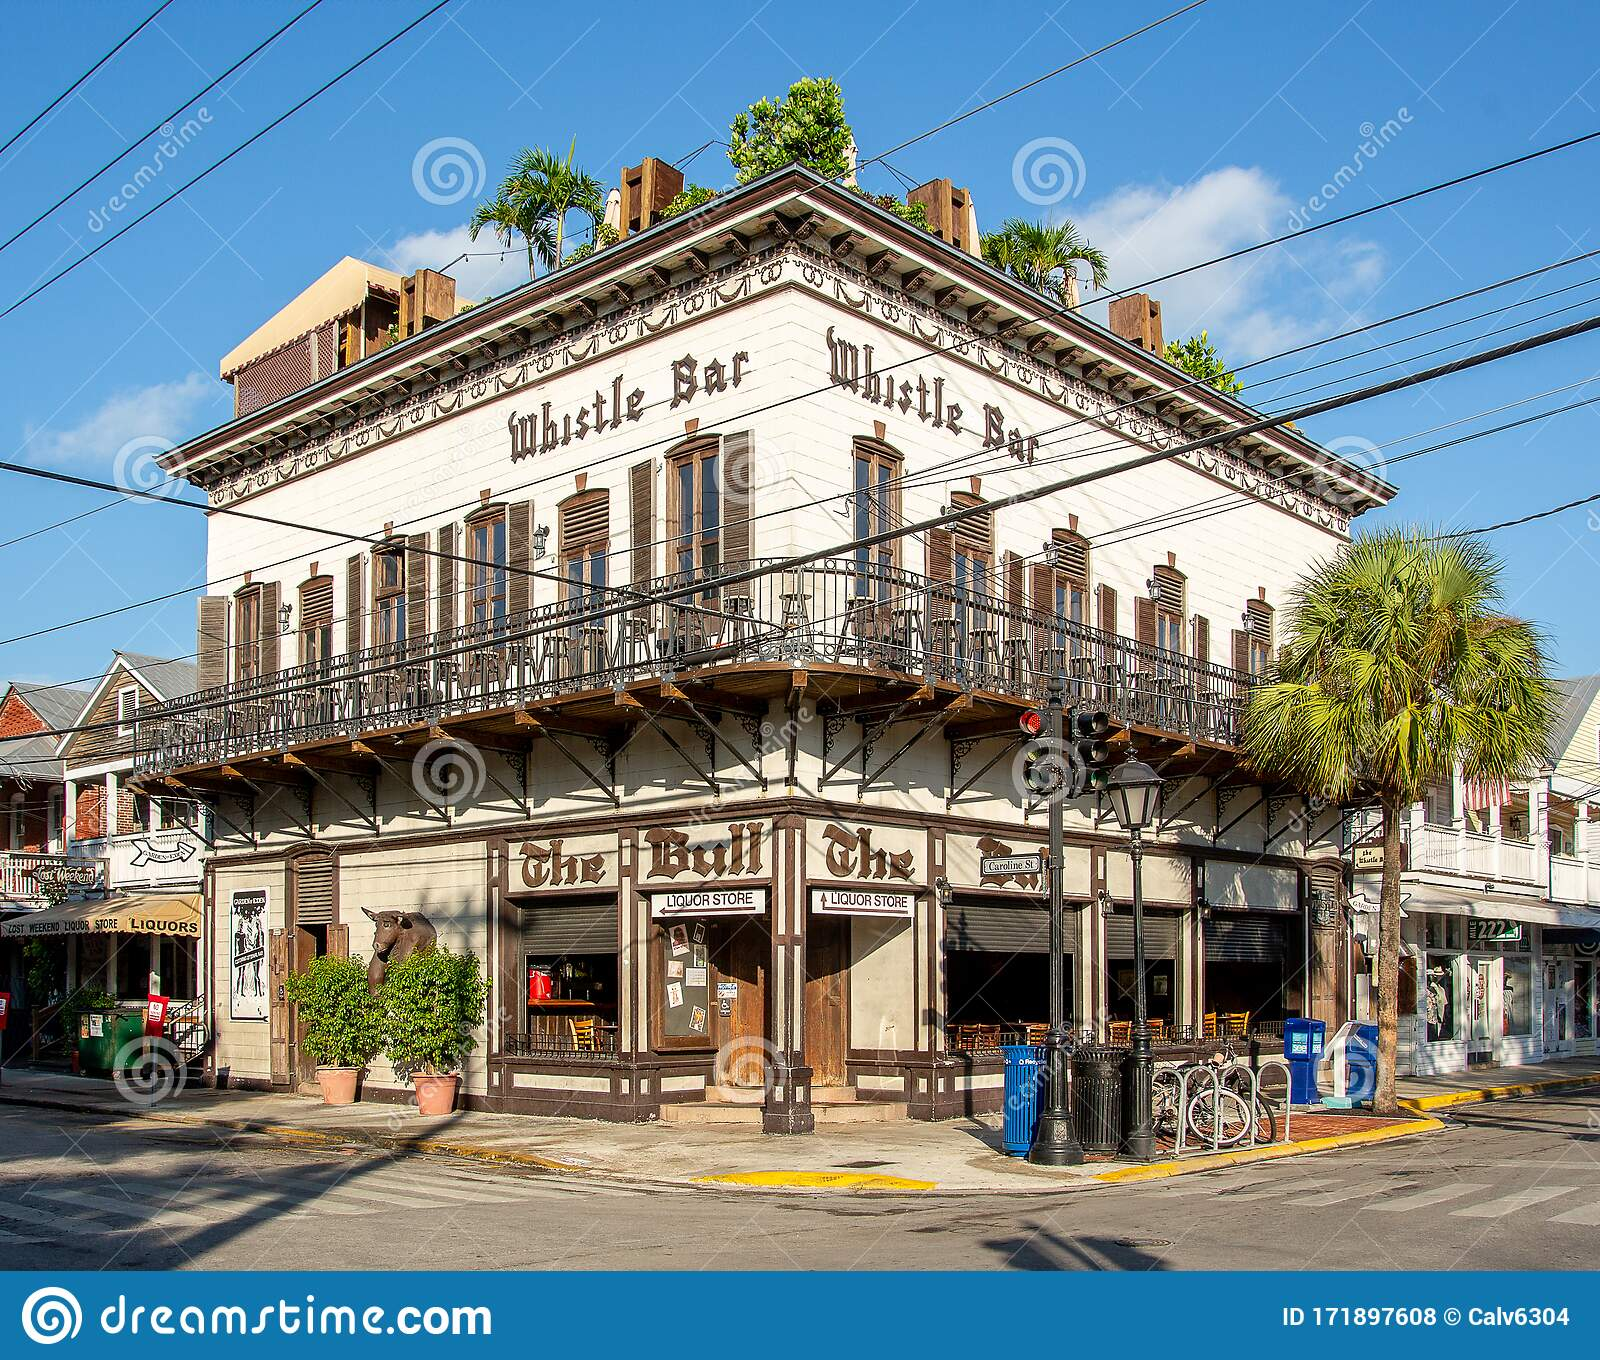 The Bull Whistle Bar On Duval Street In Key West Florida Editorial Stock Photo Image Of Weather Tropical 171897608